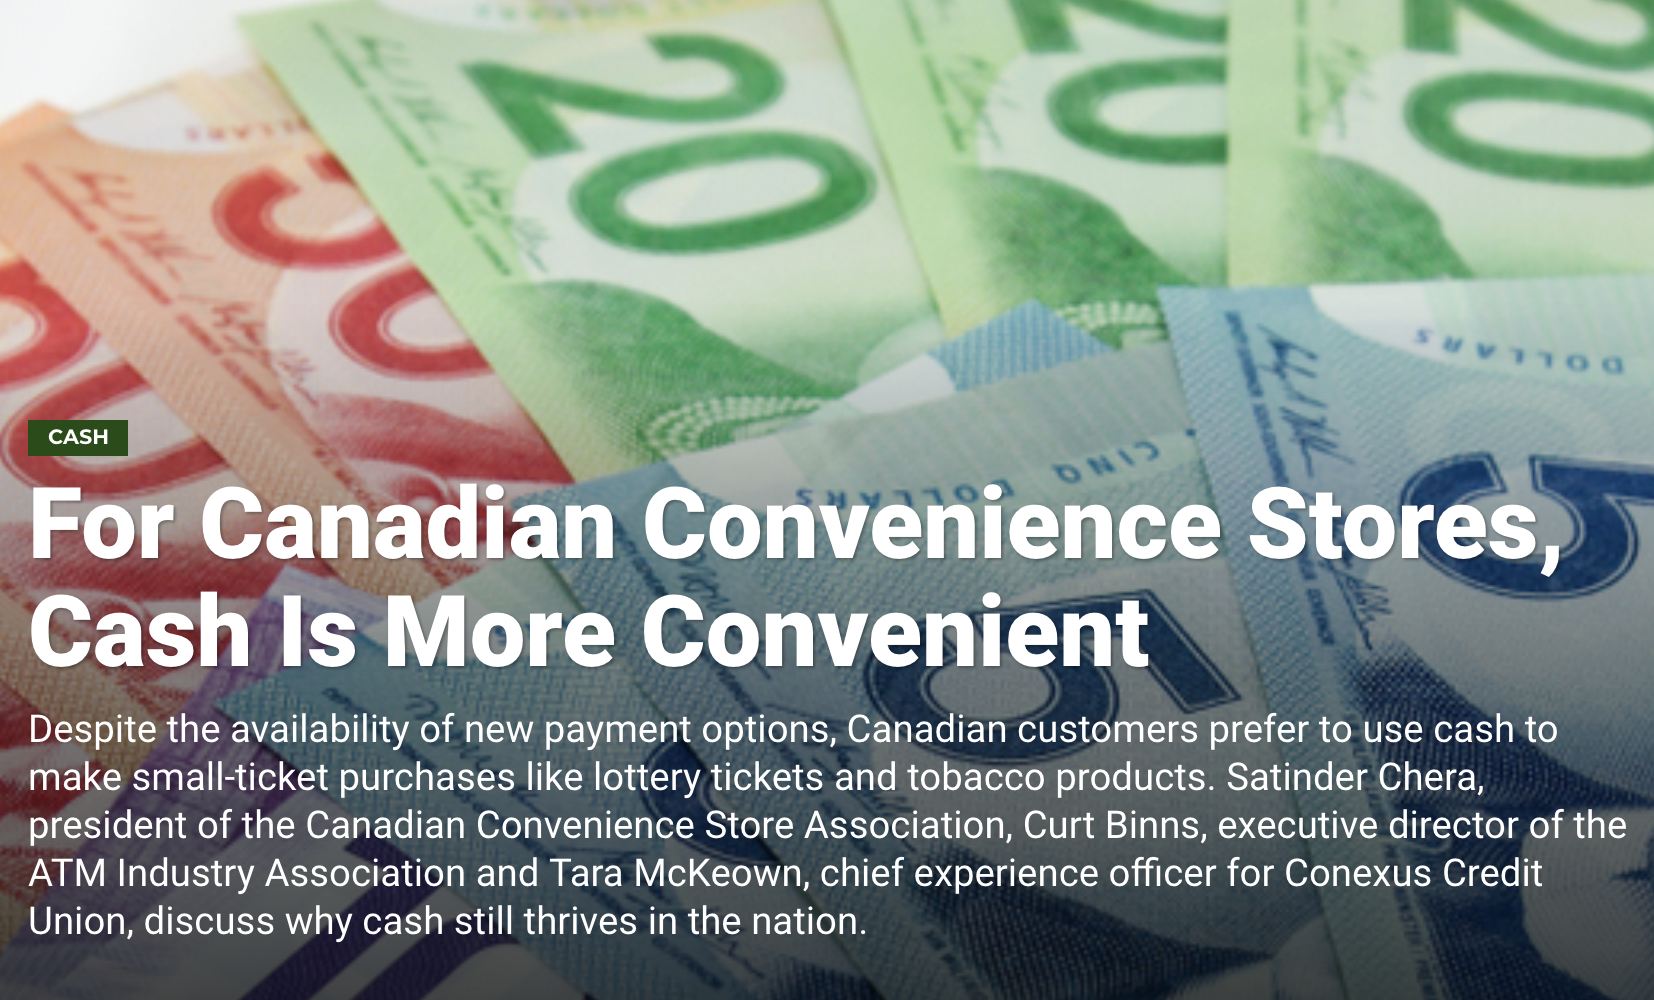 Cash is king in Canadian Convenience Stores